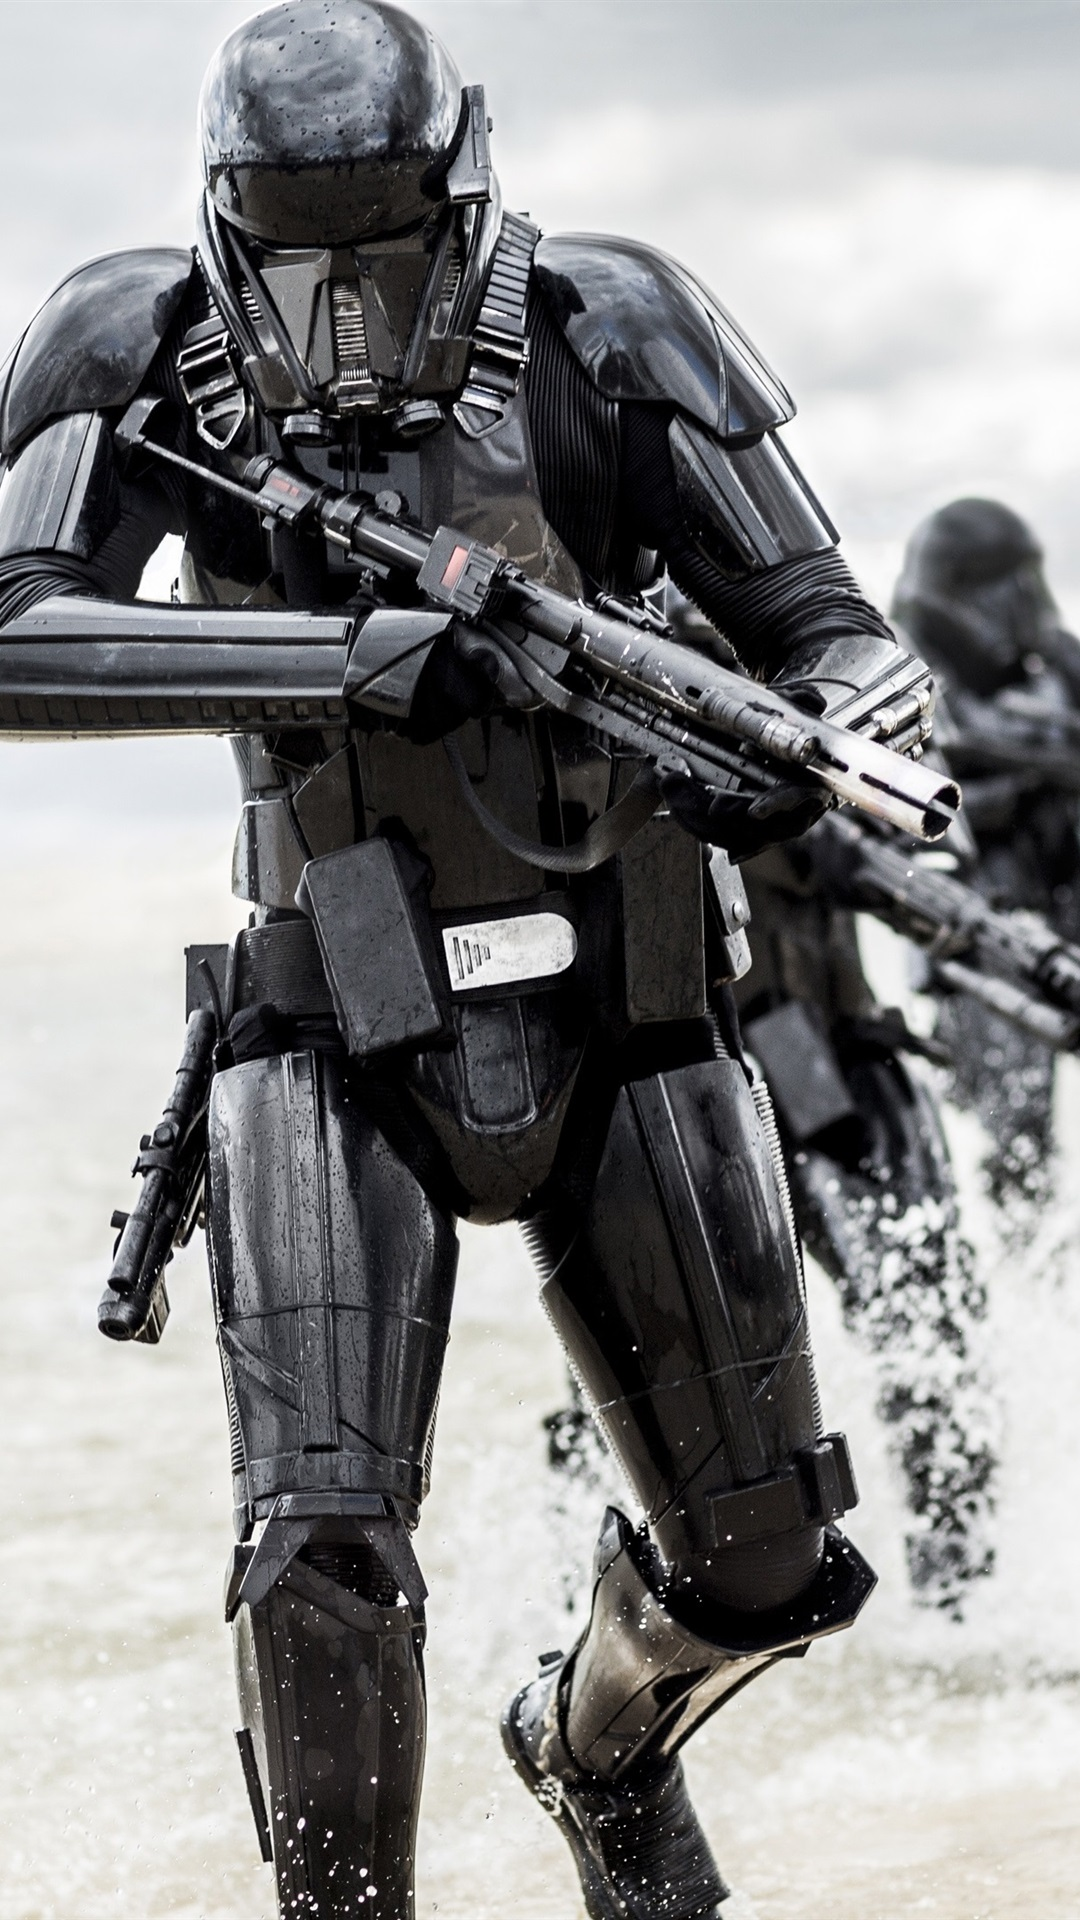 Iphone Wallpaper Rogue One Star Wars Stormtrooper Wallpaper Iphone 1080x1920 Wallpaper Teahub Io